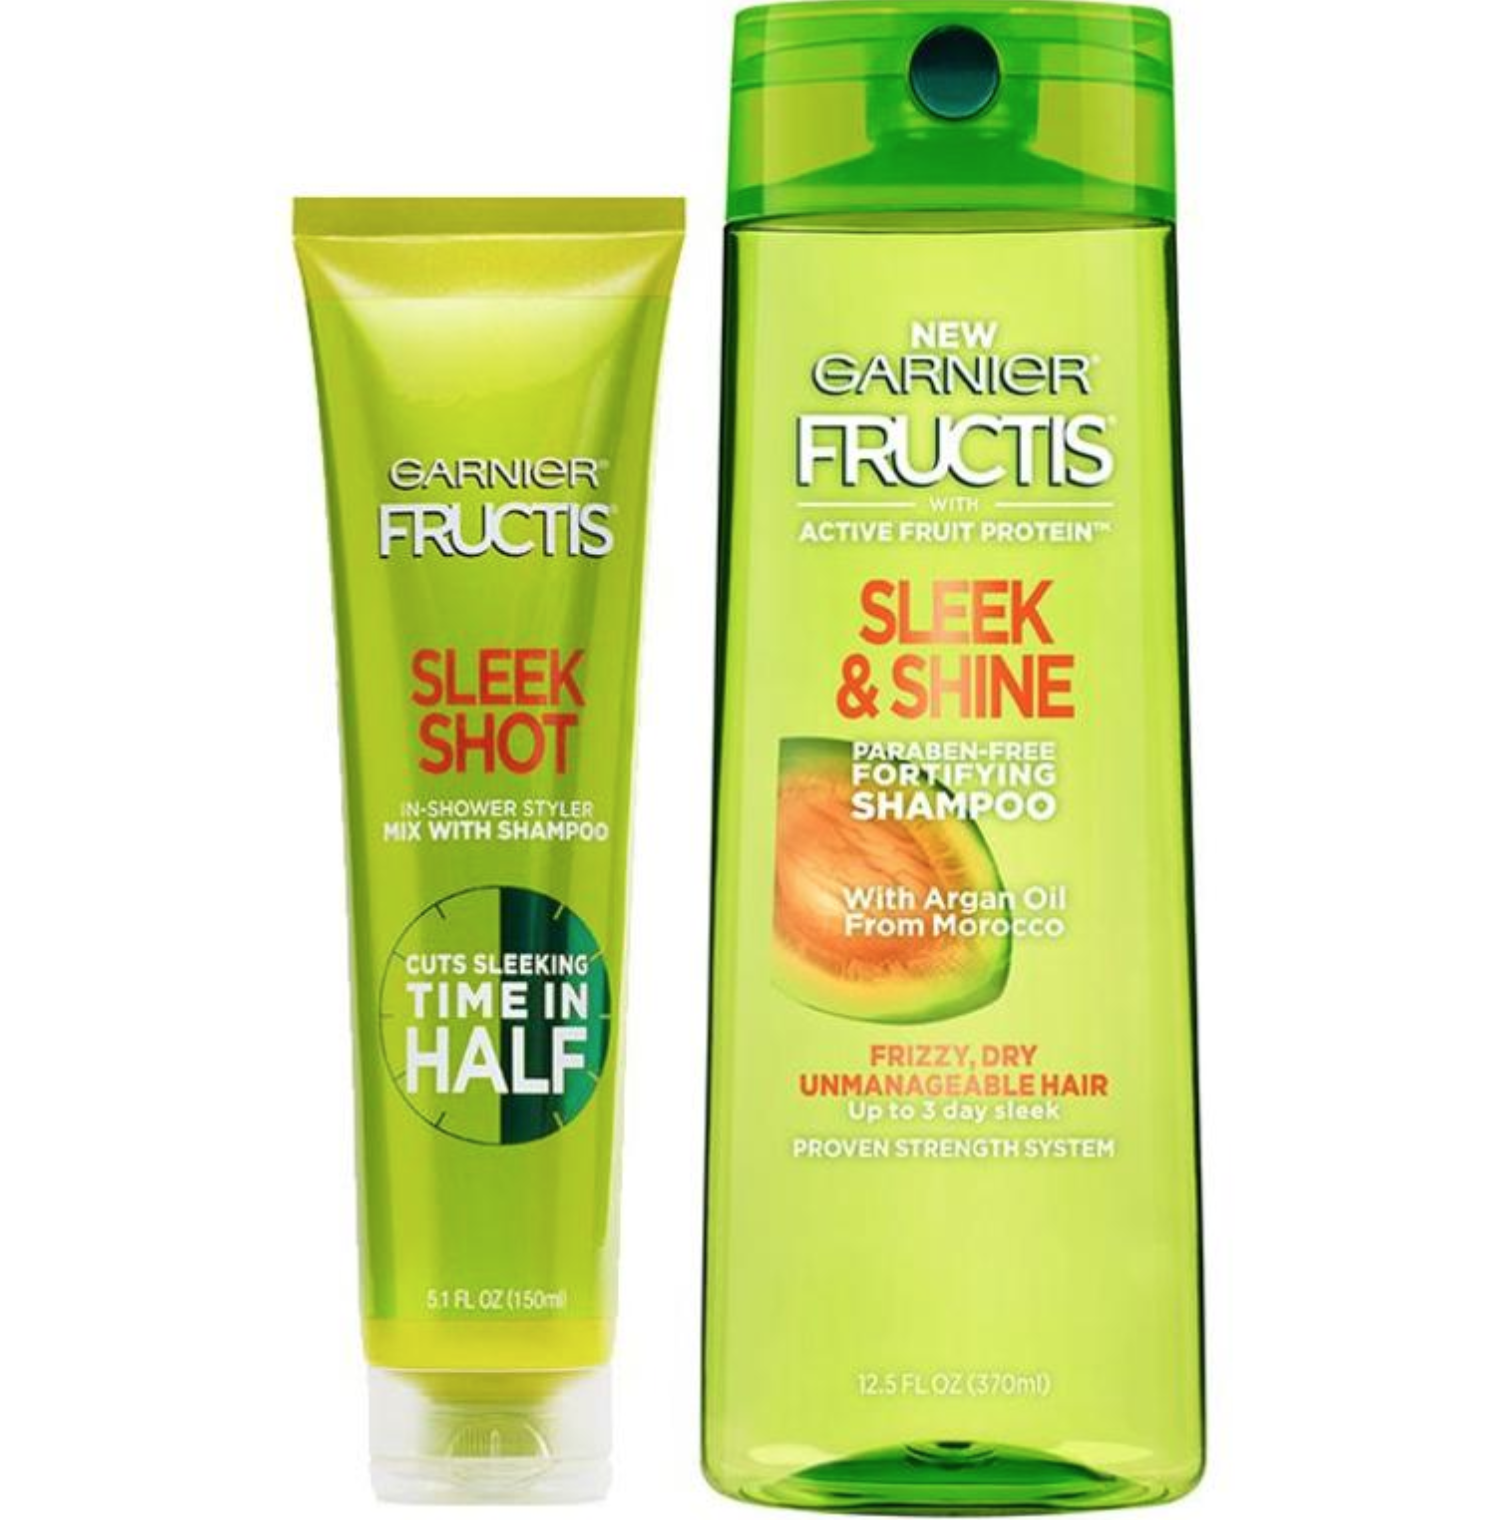 Health & Beauty at Totally Free Stuff